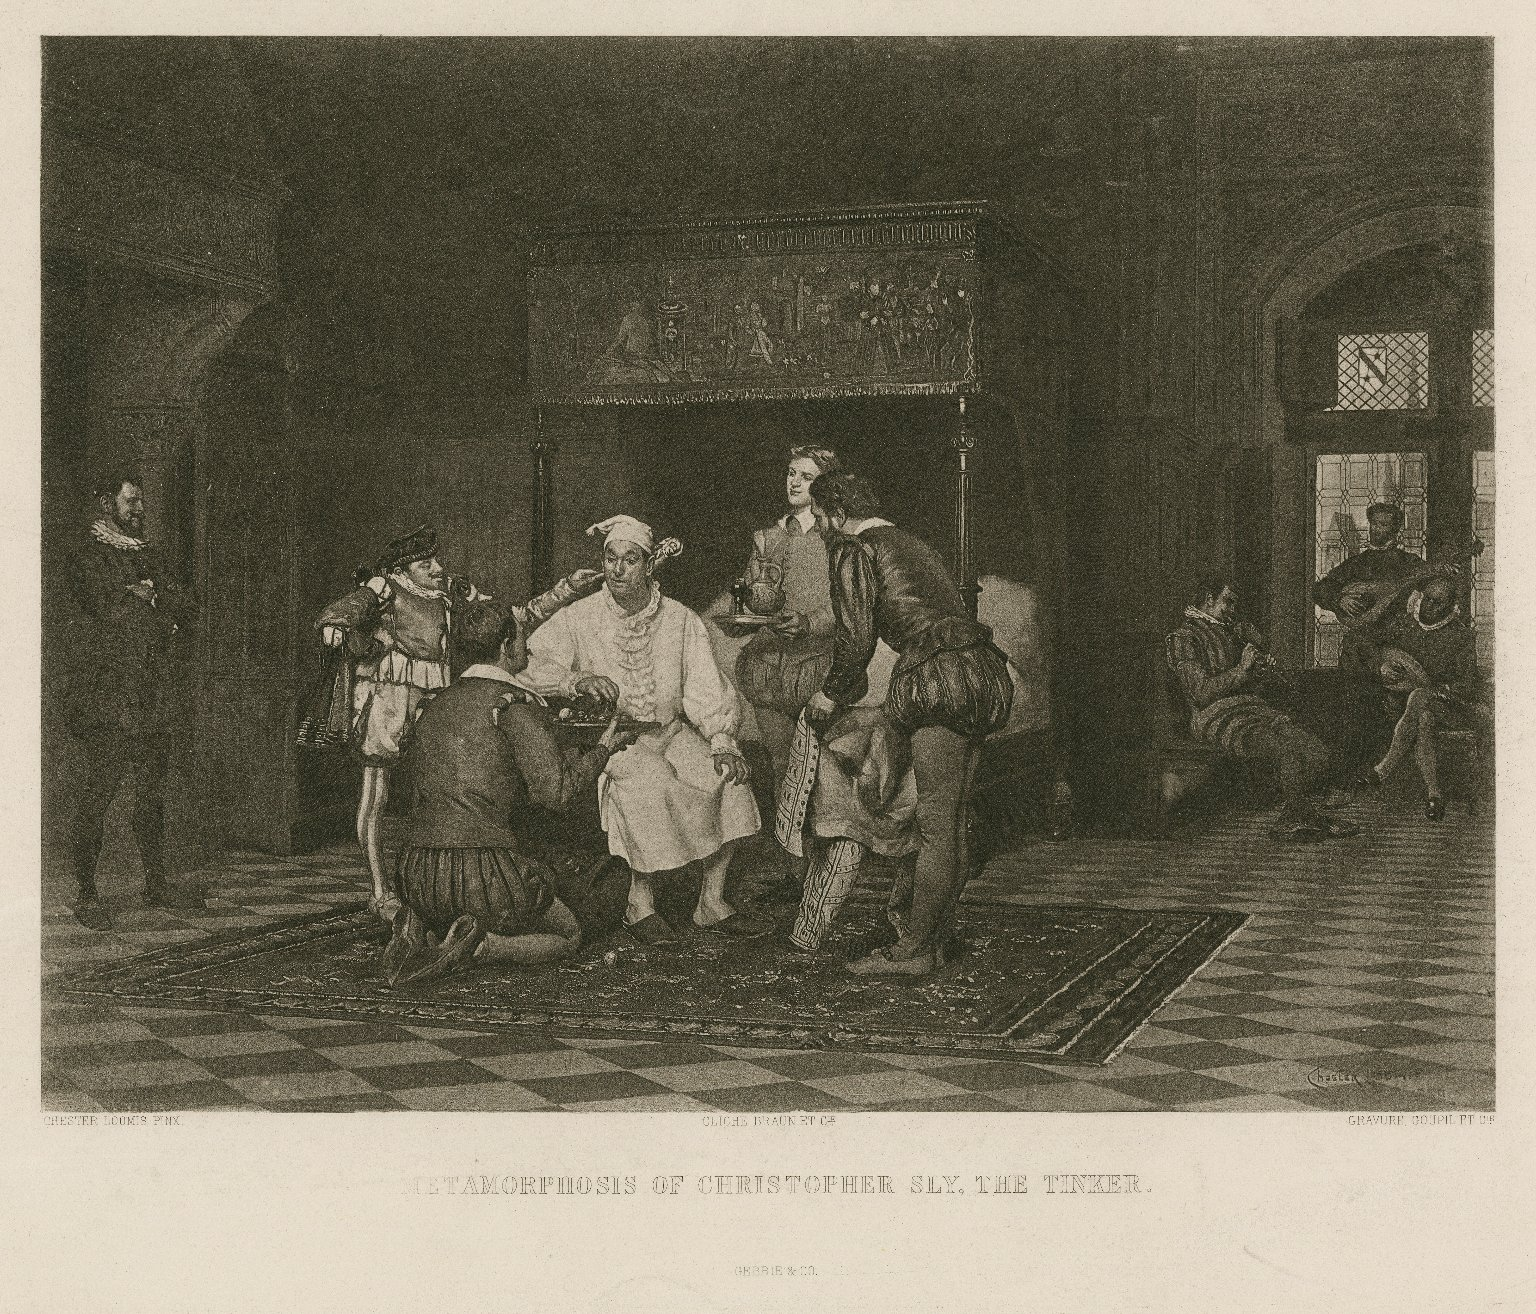 Metamorphosis of Christopher Sly, the tinker [Taming of the shrew: introduction, scene 2] [graphic] / Chester Loomis, pinxt. ; gravure, Goupil et cie.